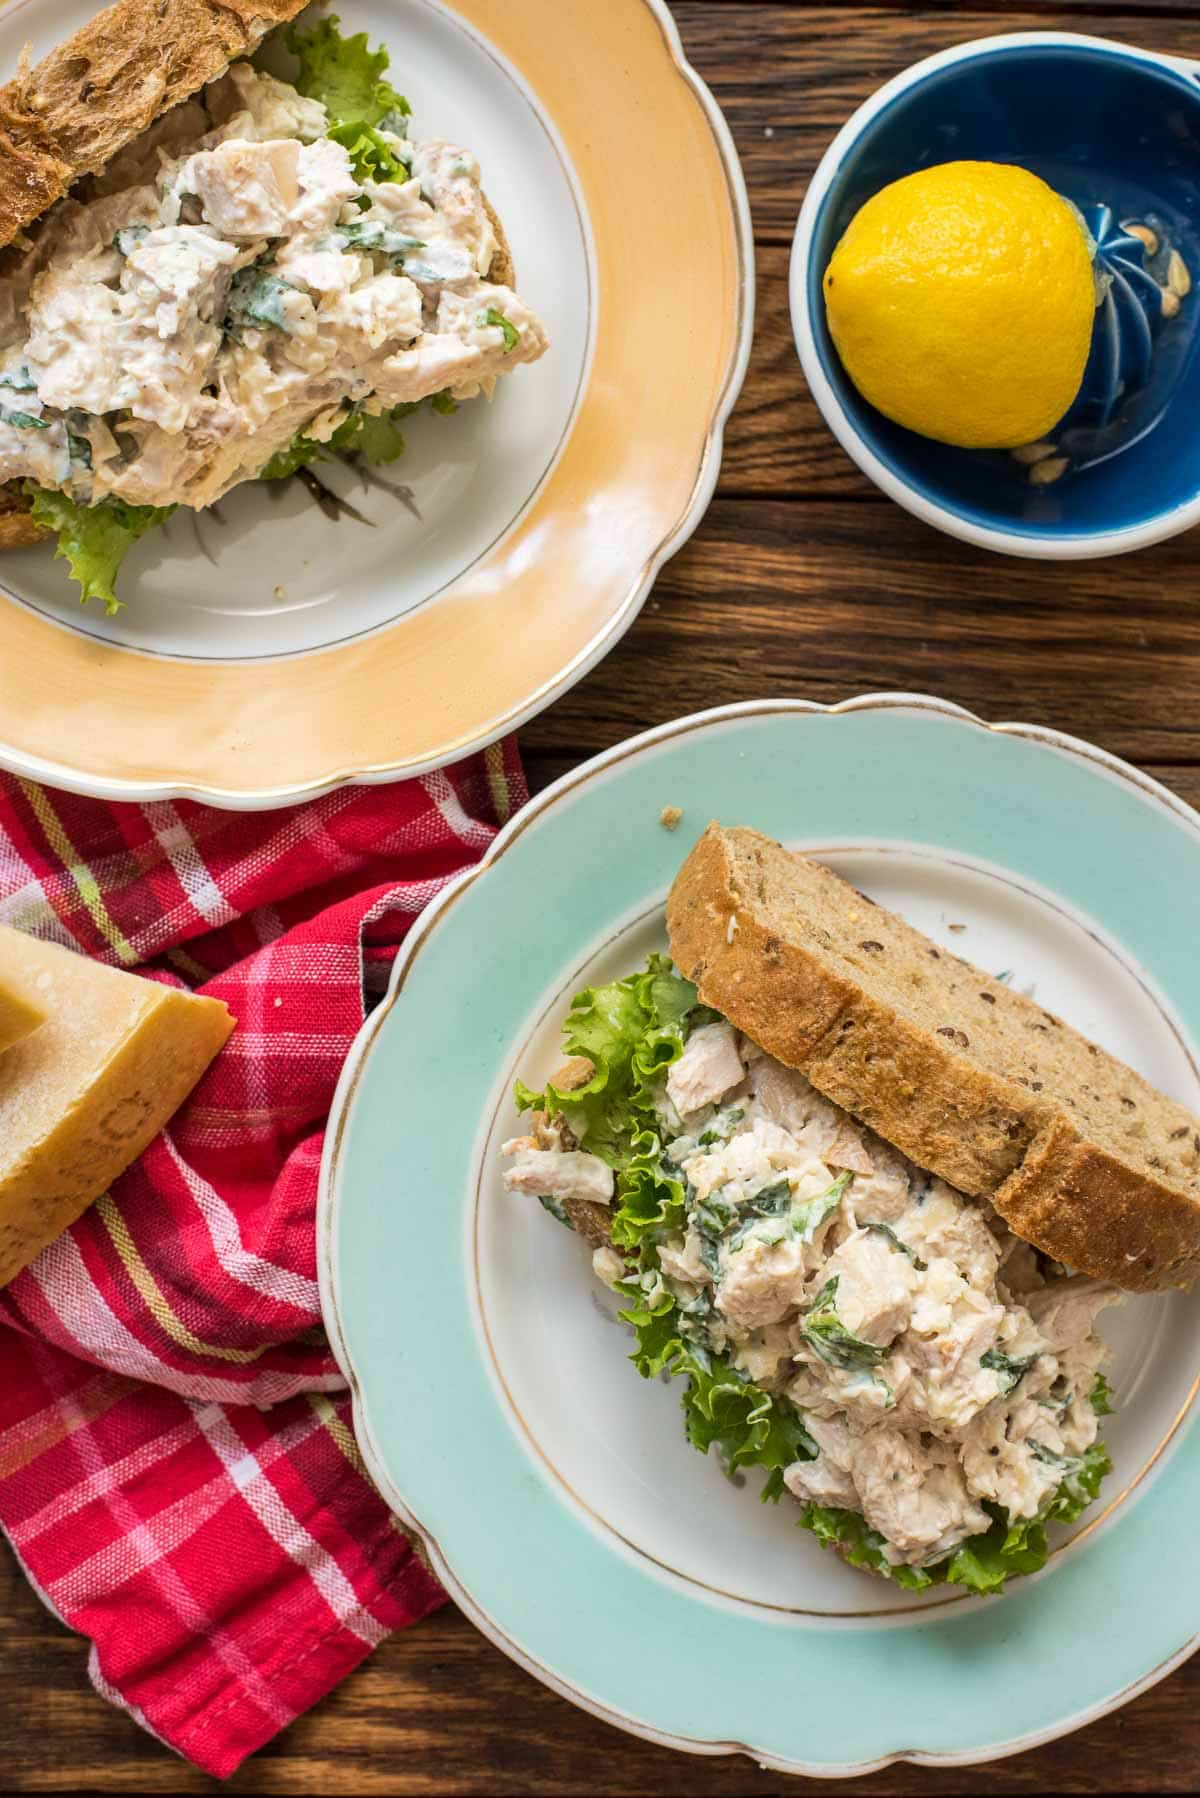 This Parmesan Basil Chicken Salad is a great twist on traditional chicken salad. Perfect for summer!